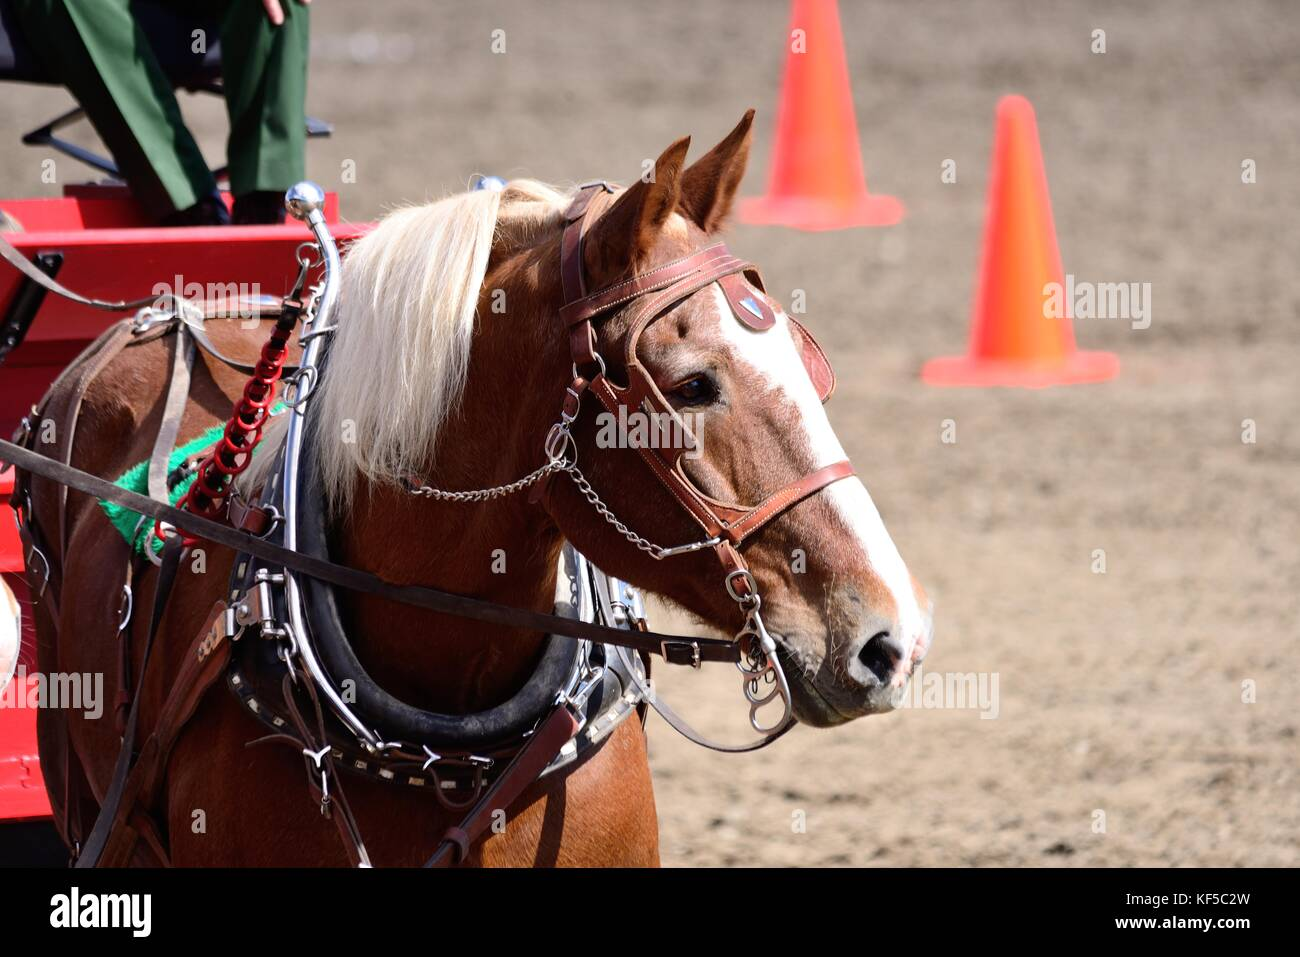 Draft horse at show. - Stock Image